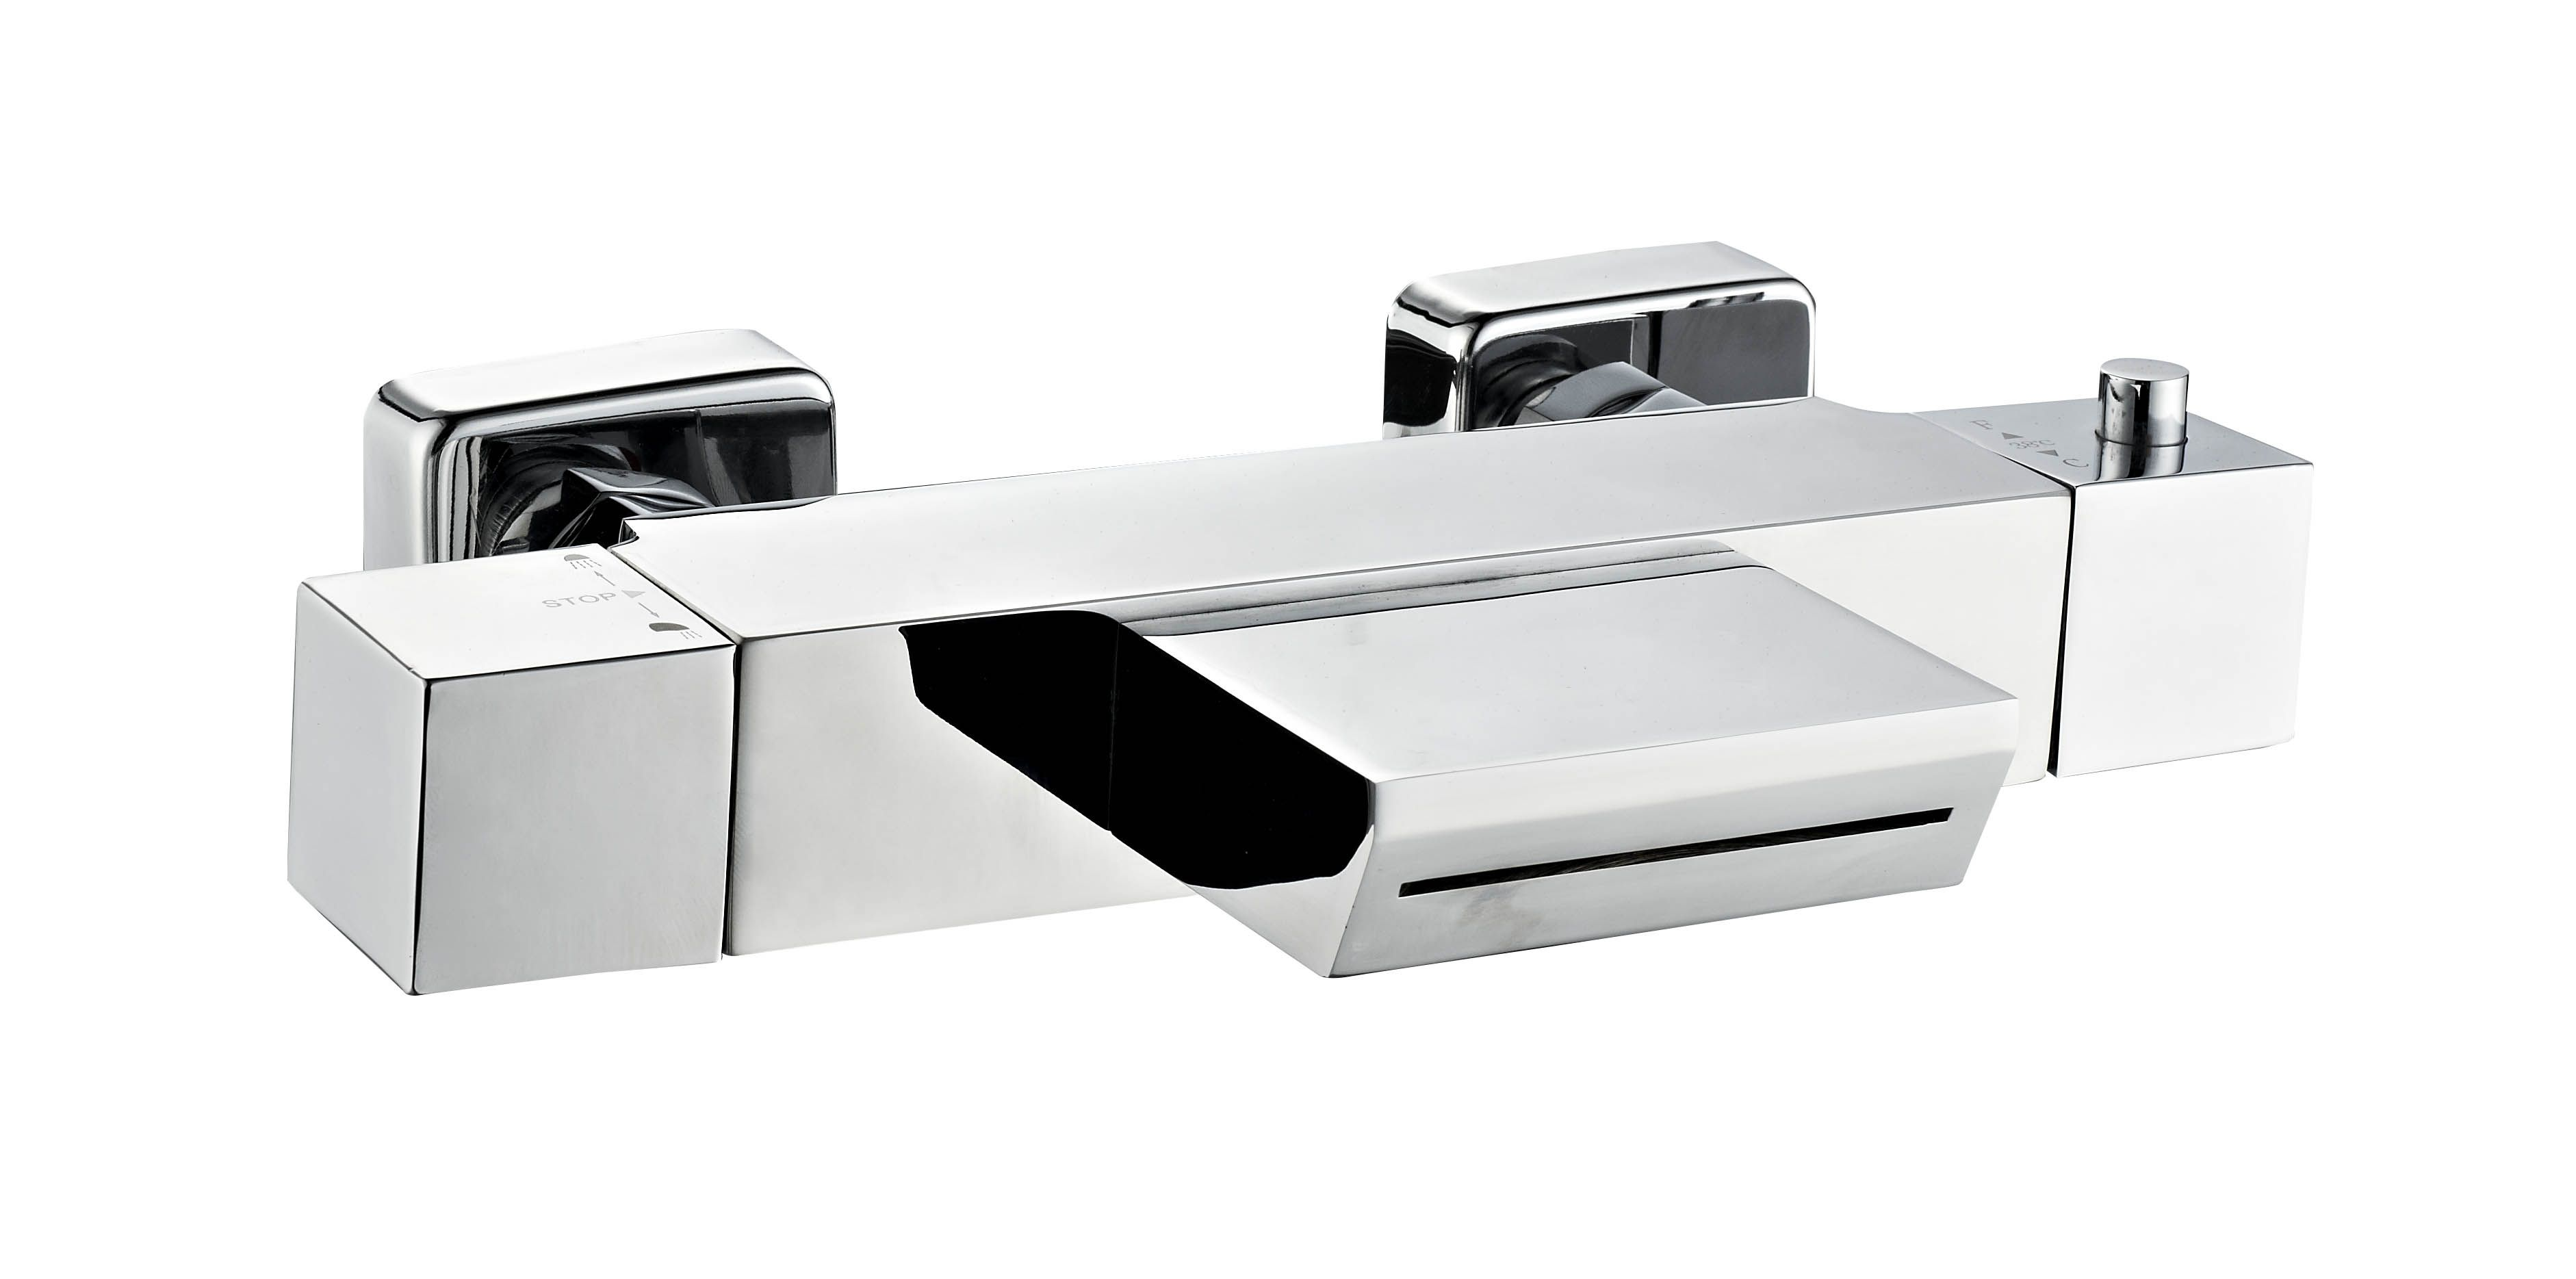 Lambini Designs Cube badkraan waterval thermostaat